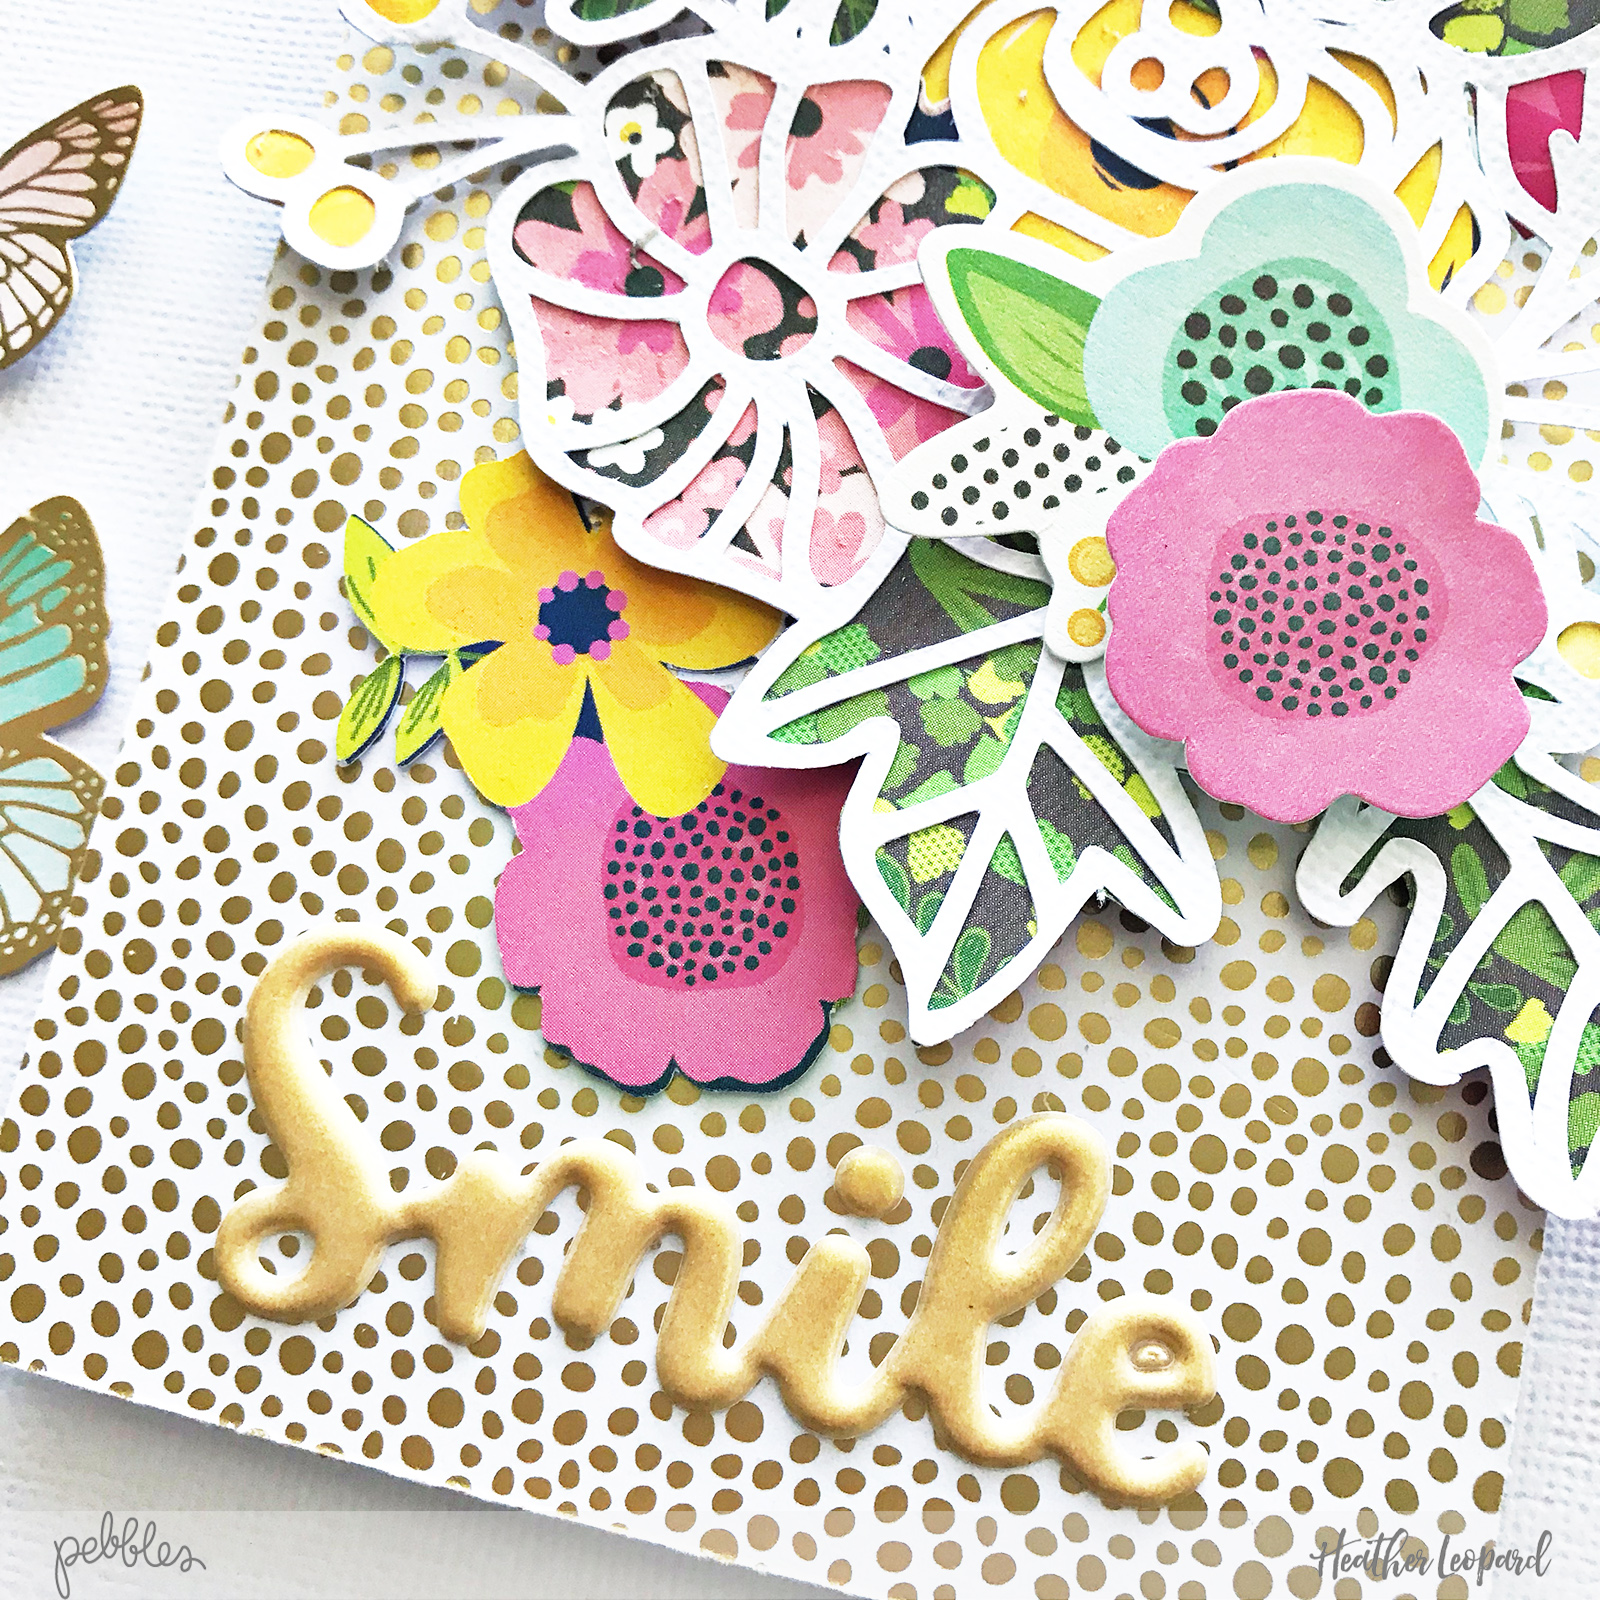 Spring Cards by @HeatherLeopard using @pebblesinc #patioparty collection #madewithpebbles #spring #cards #flowercards